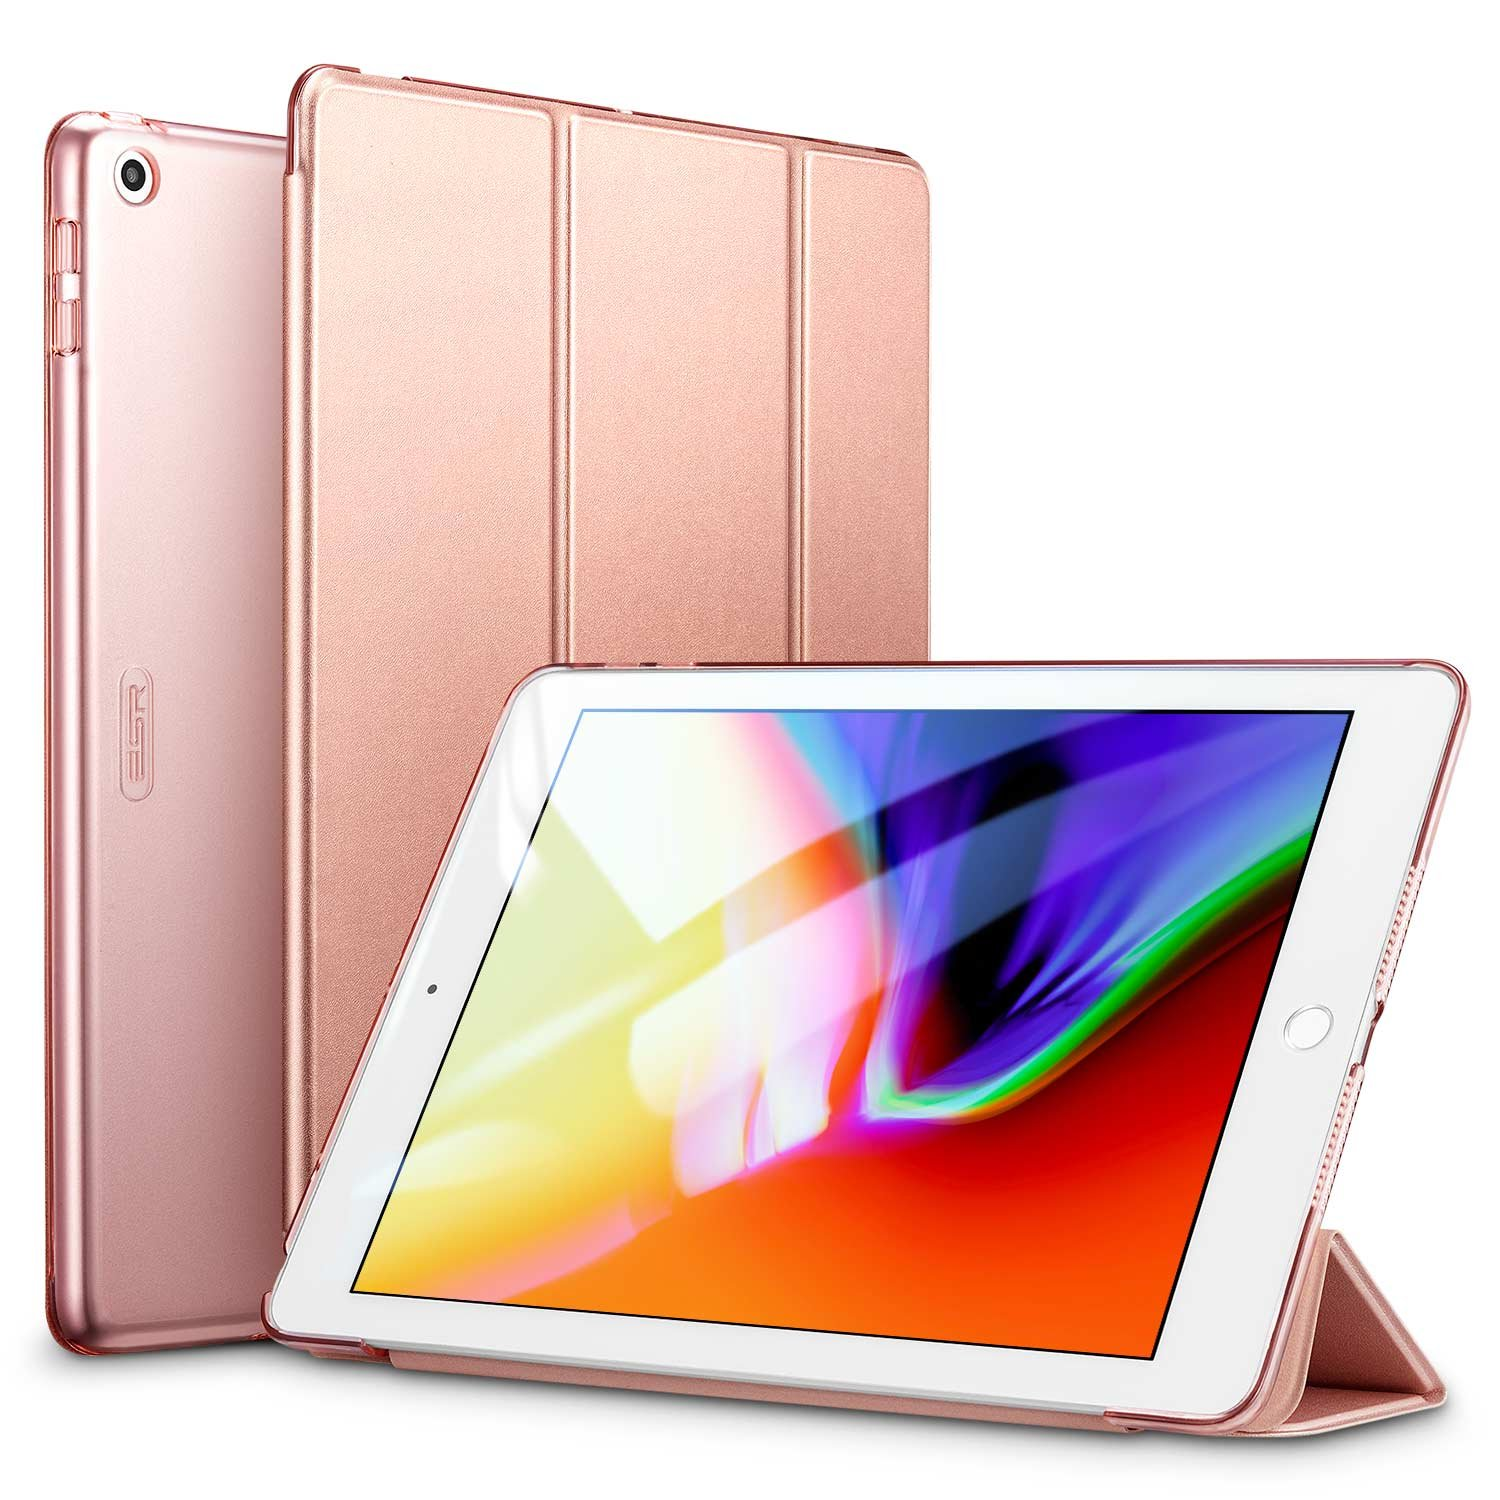 ESR iPad 9.7 2018/2017 Case, Lightweight Smart Case Trifold Stand Auto Sleep/Wake Function, Microfiber Lining, Hard Back Cover The Apple iPad 9.7 iPad 5th/6th Generation,Rose Gold B06W5FTHL7